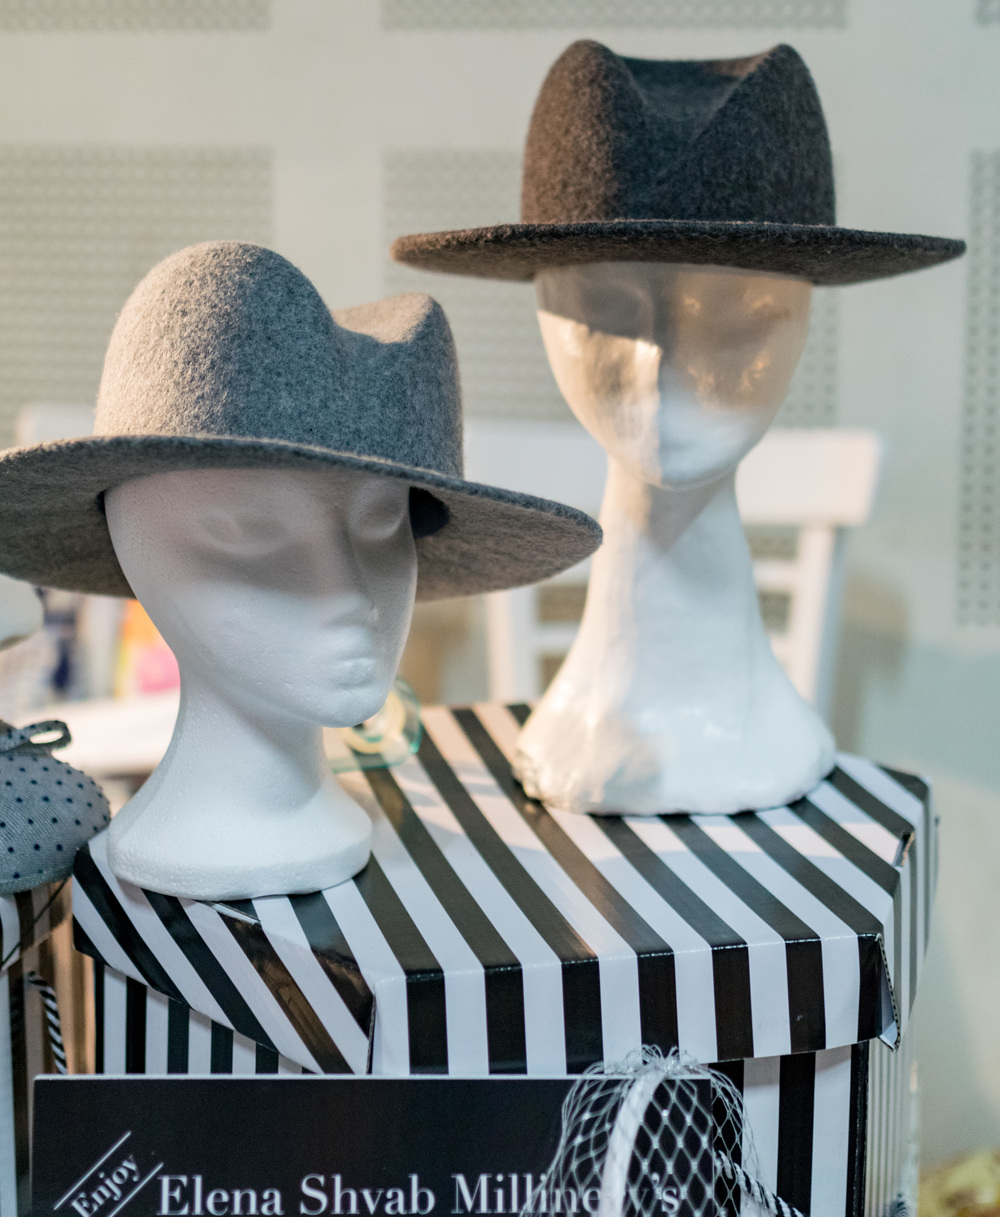 Hats by Elena Shvab